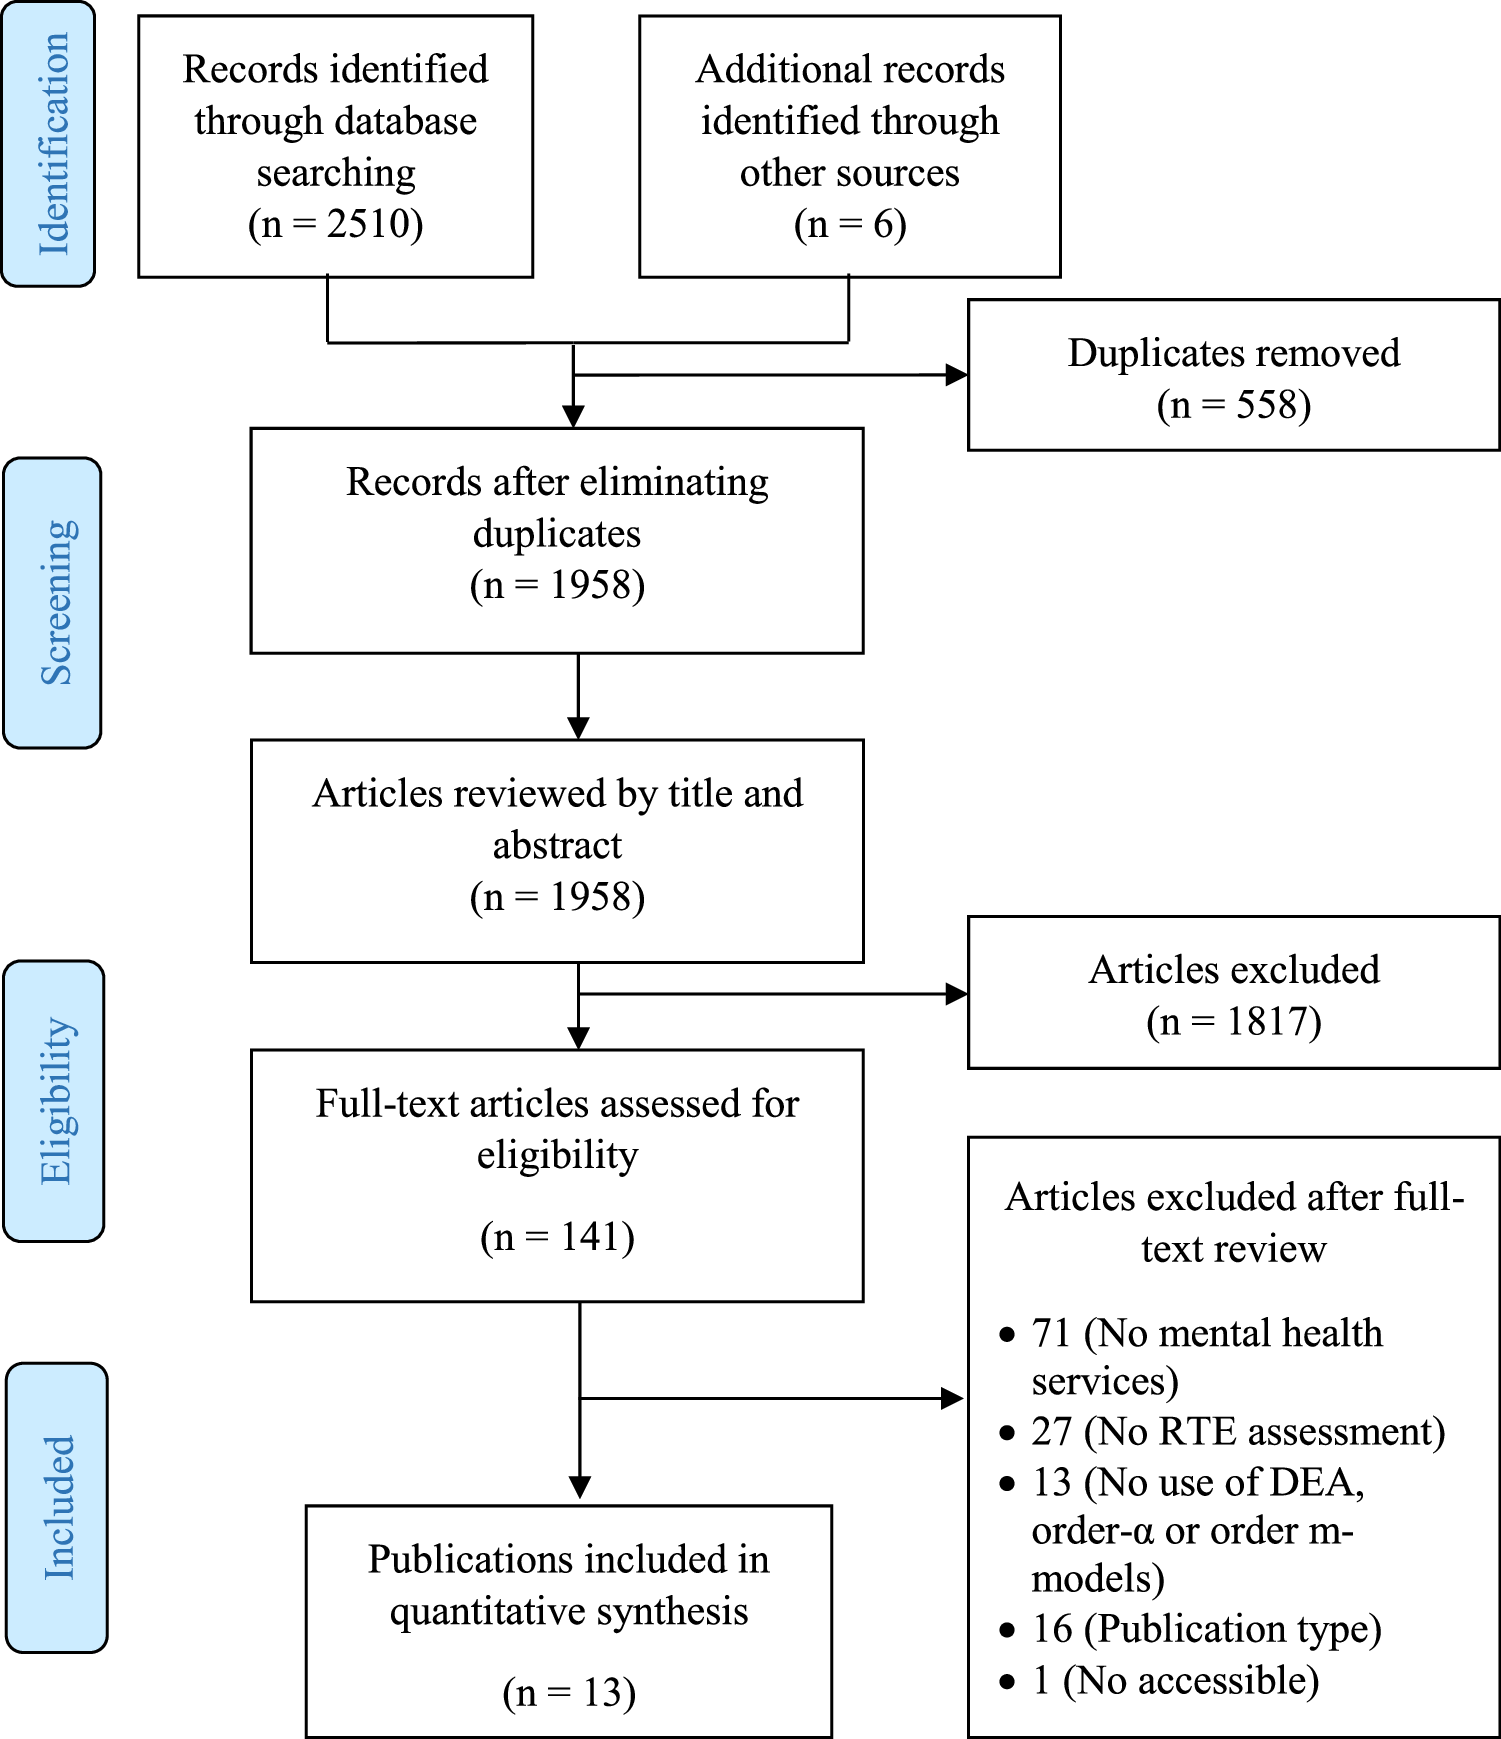 Relative Technical Efficiency Assessment of Mental Health